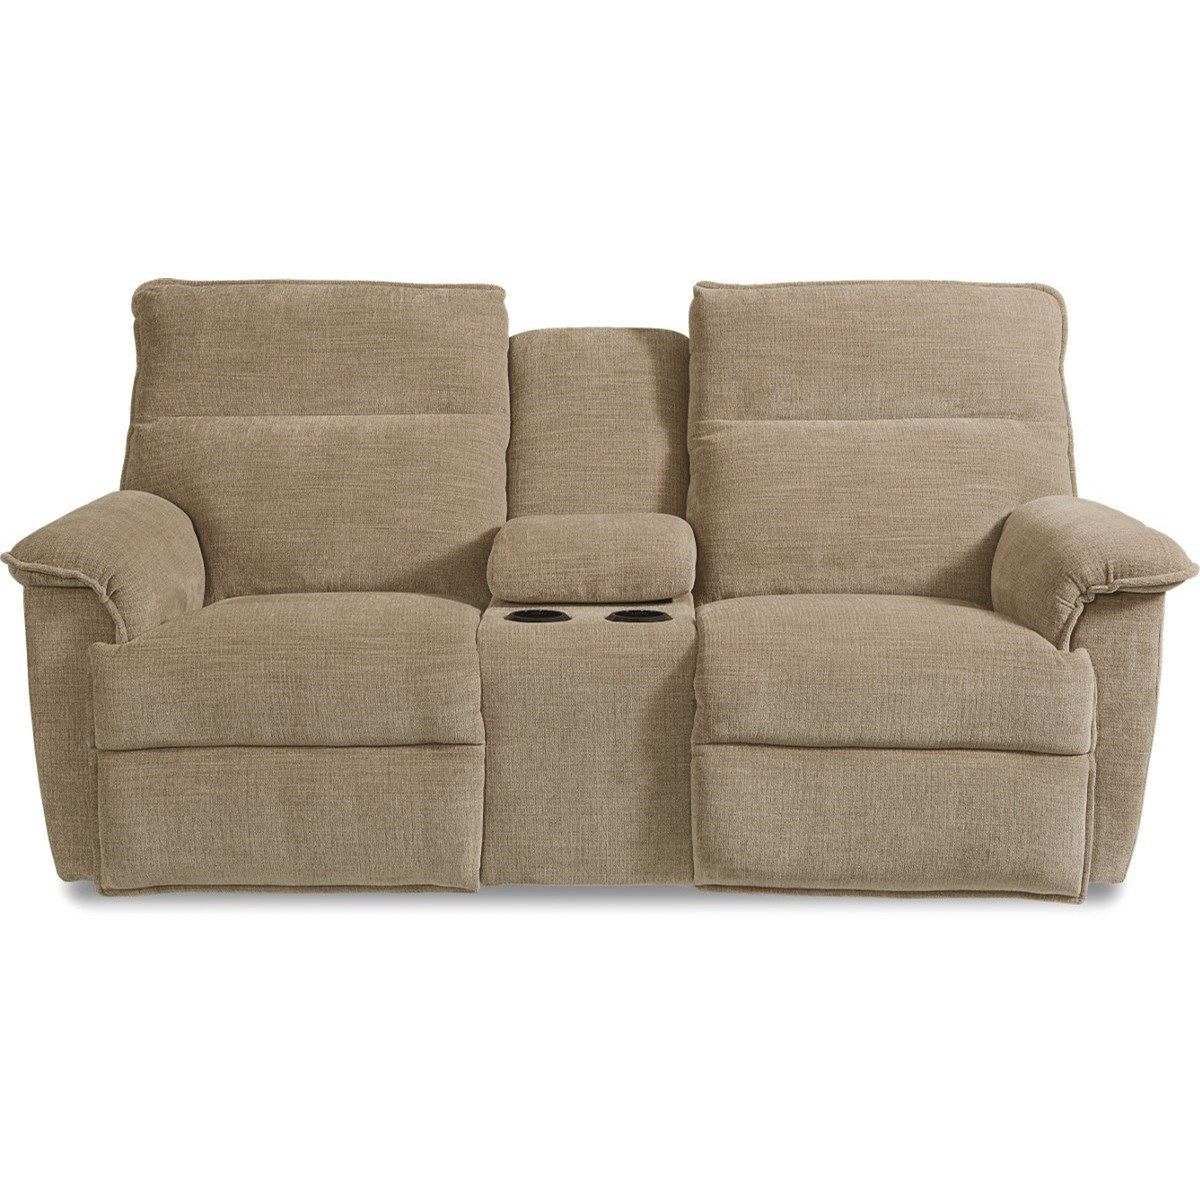 Jay PowerRecline Loveseat w/ Power Head & Consol by La-Z-Boy at Johnny Janosik